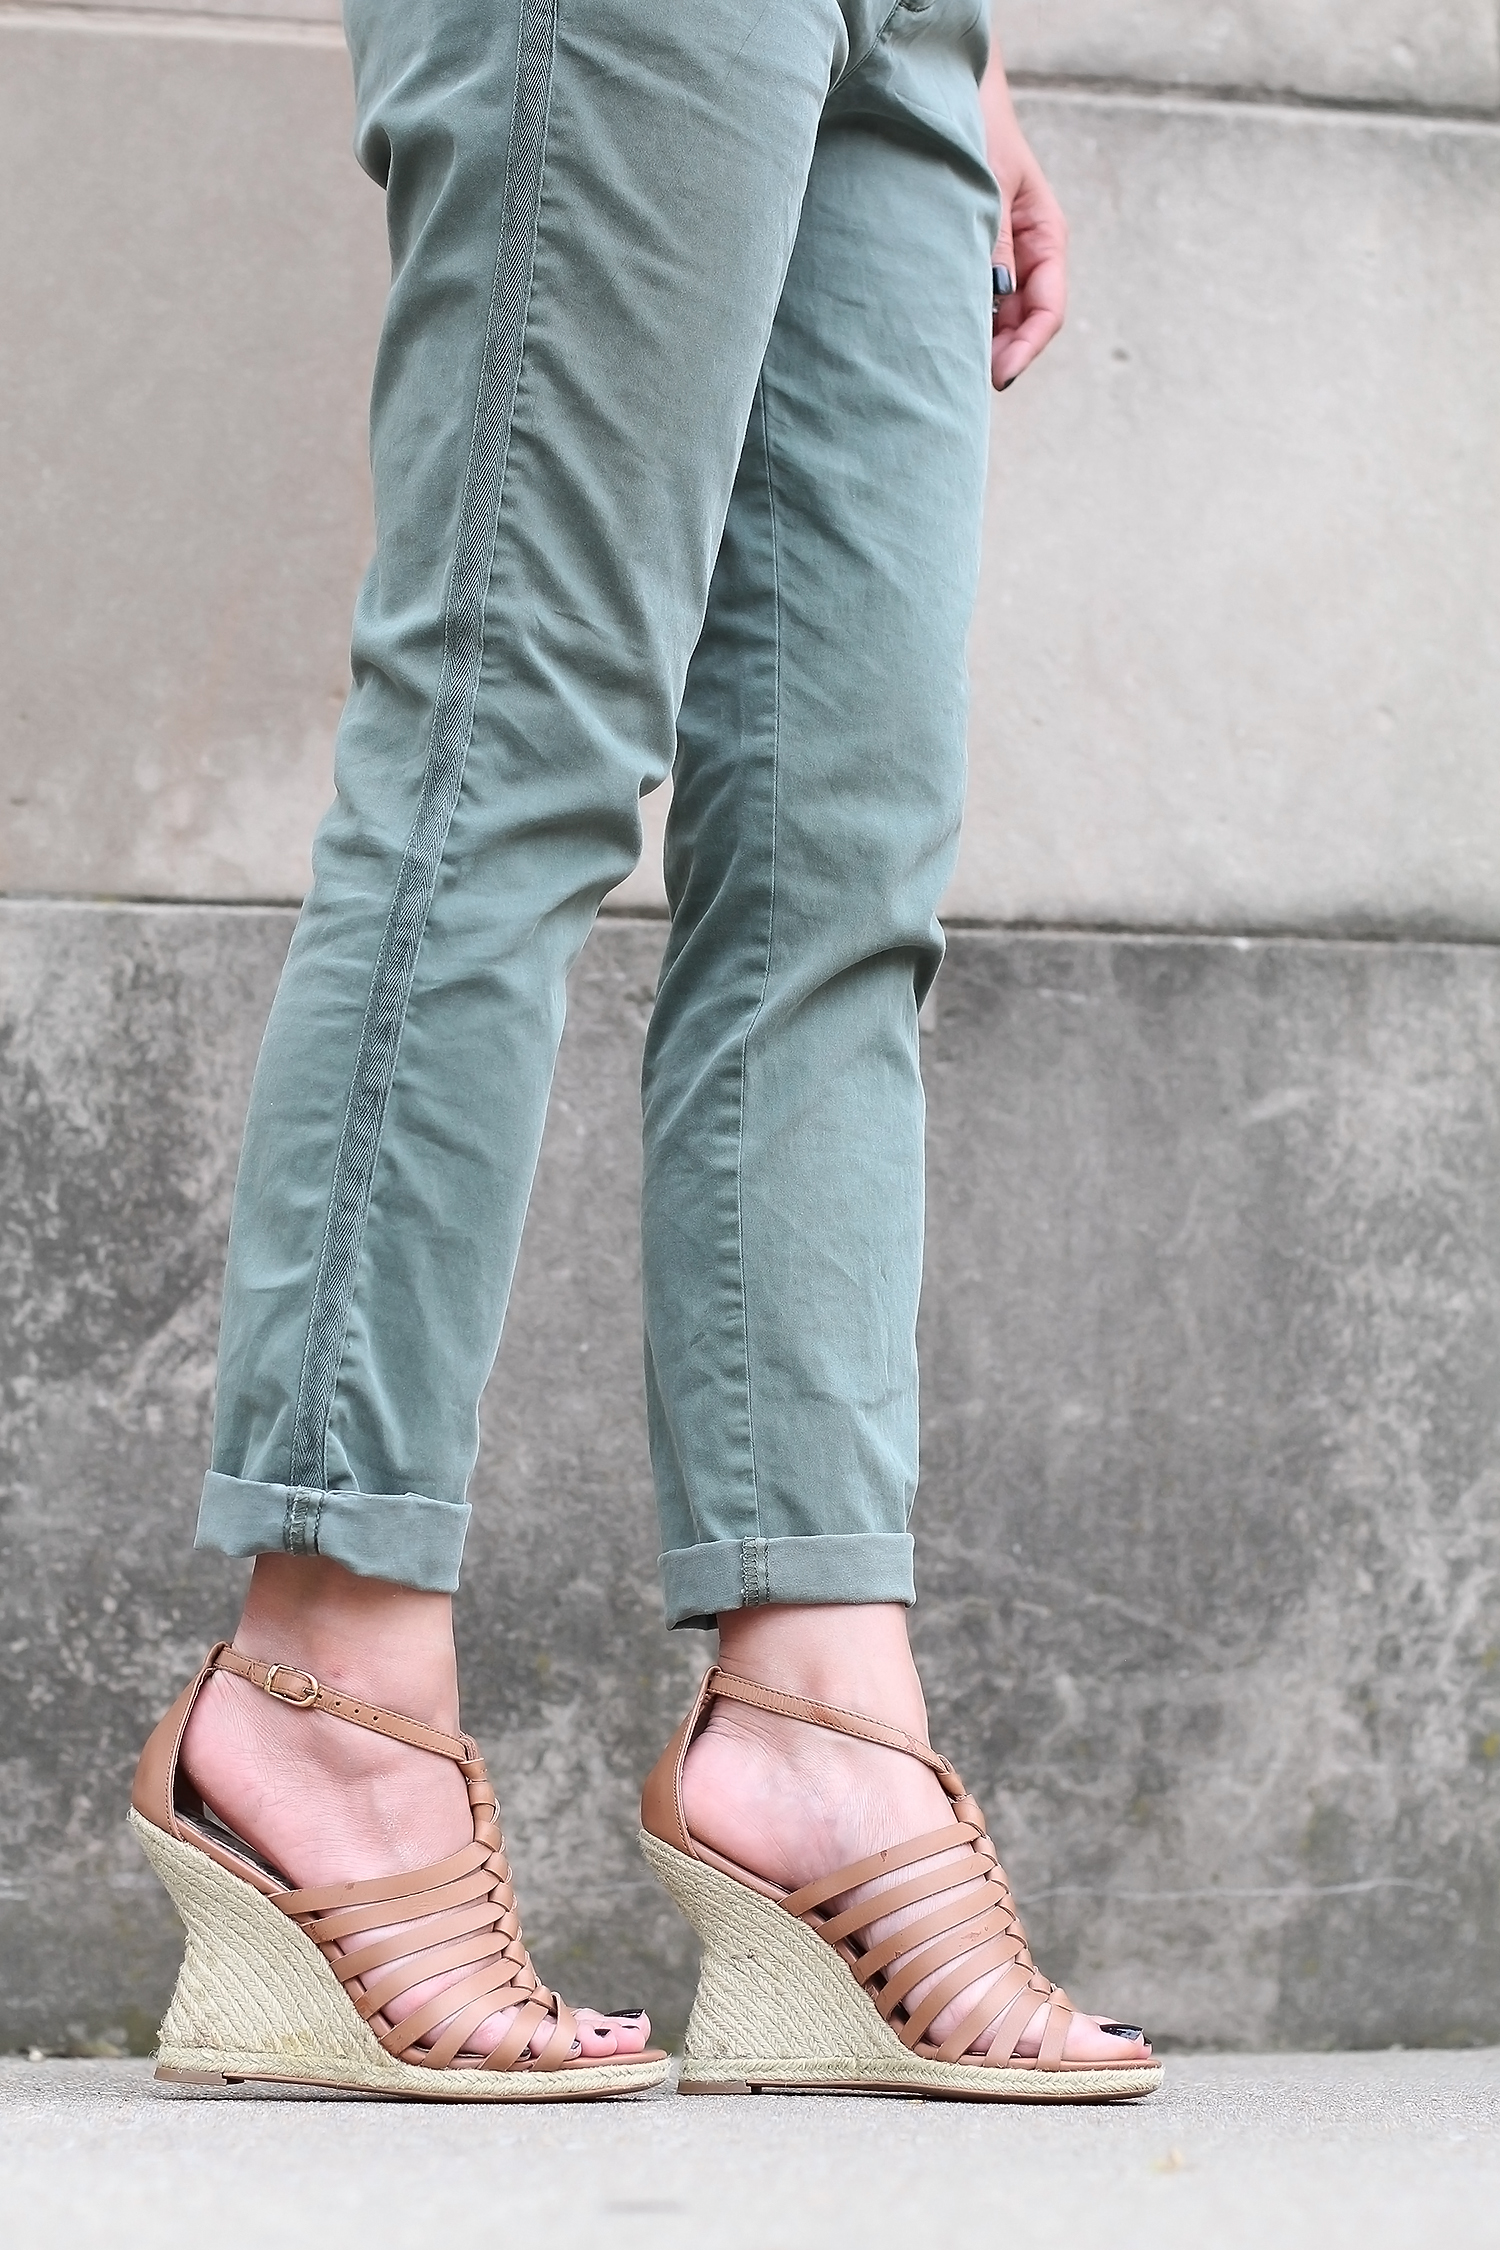 Espradrille Wedges with Pants Outfit